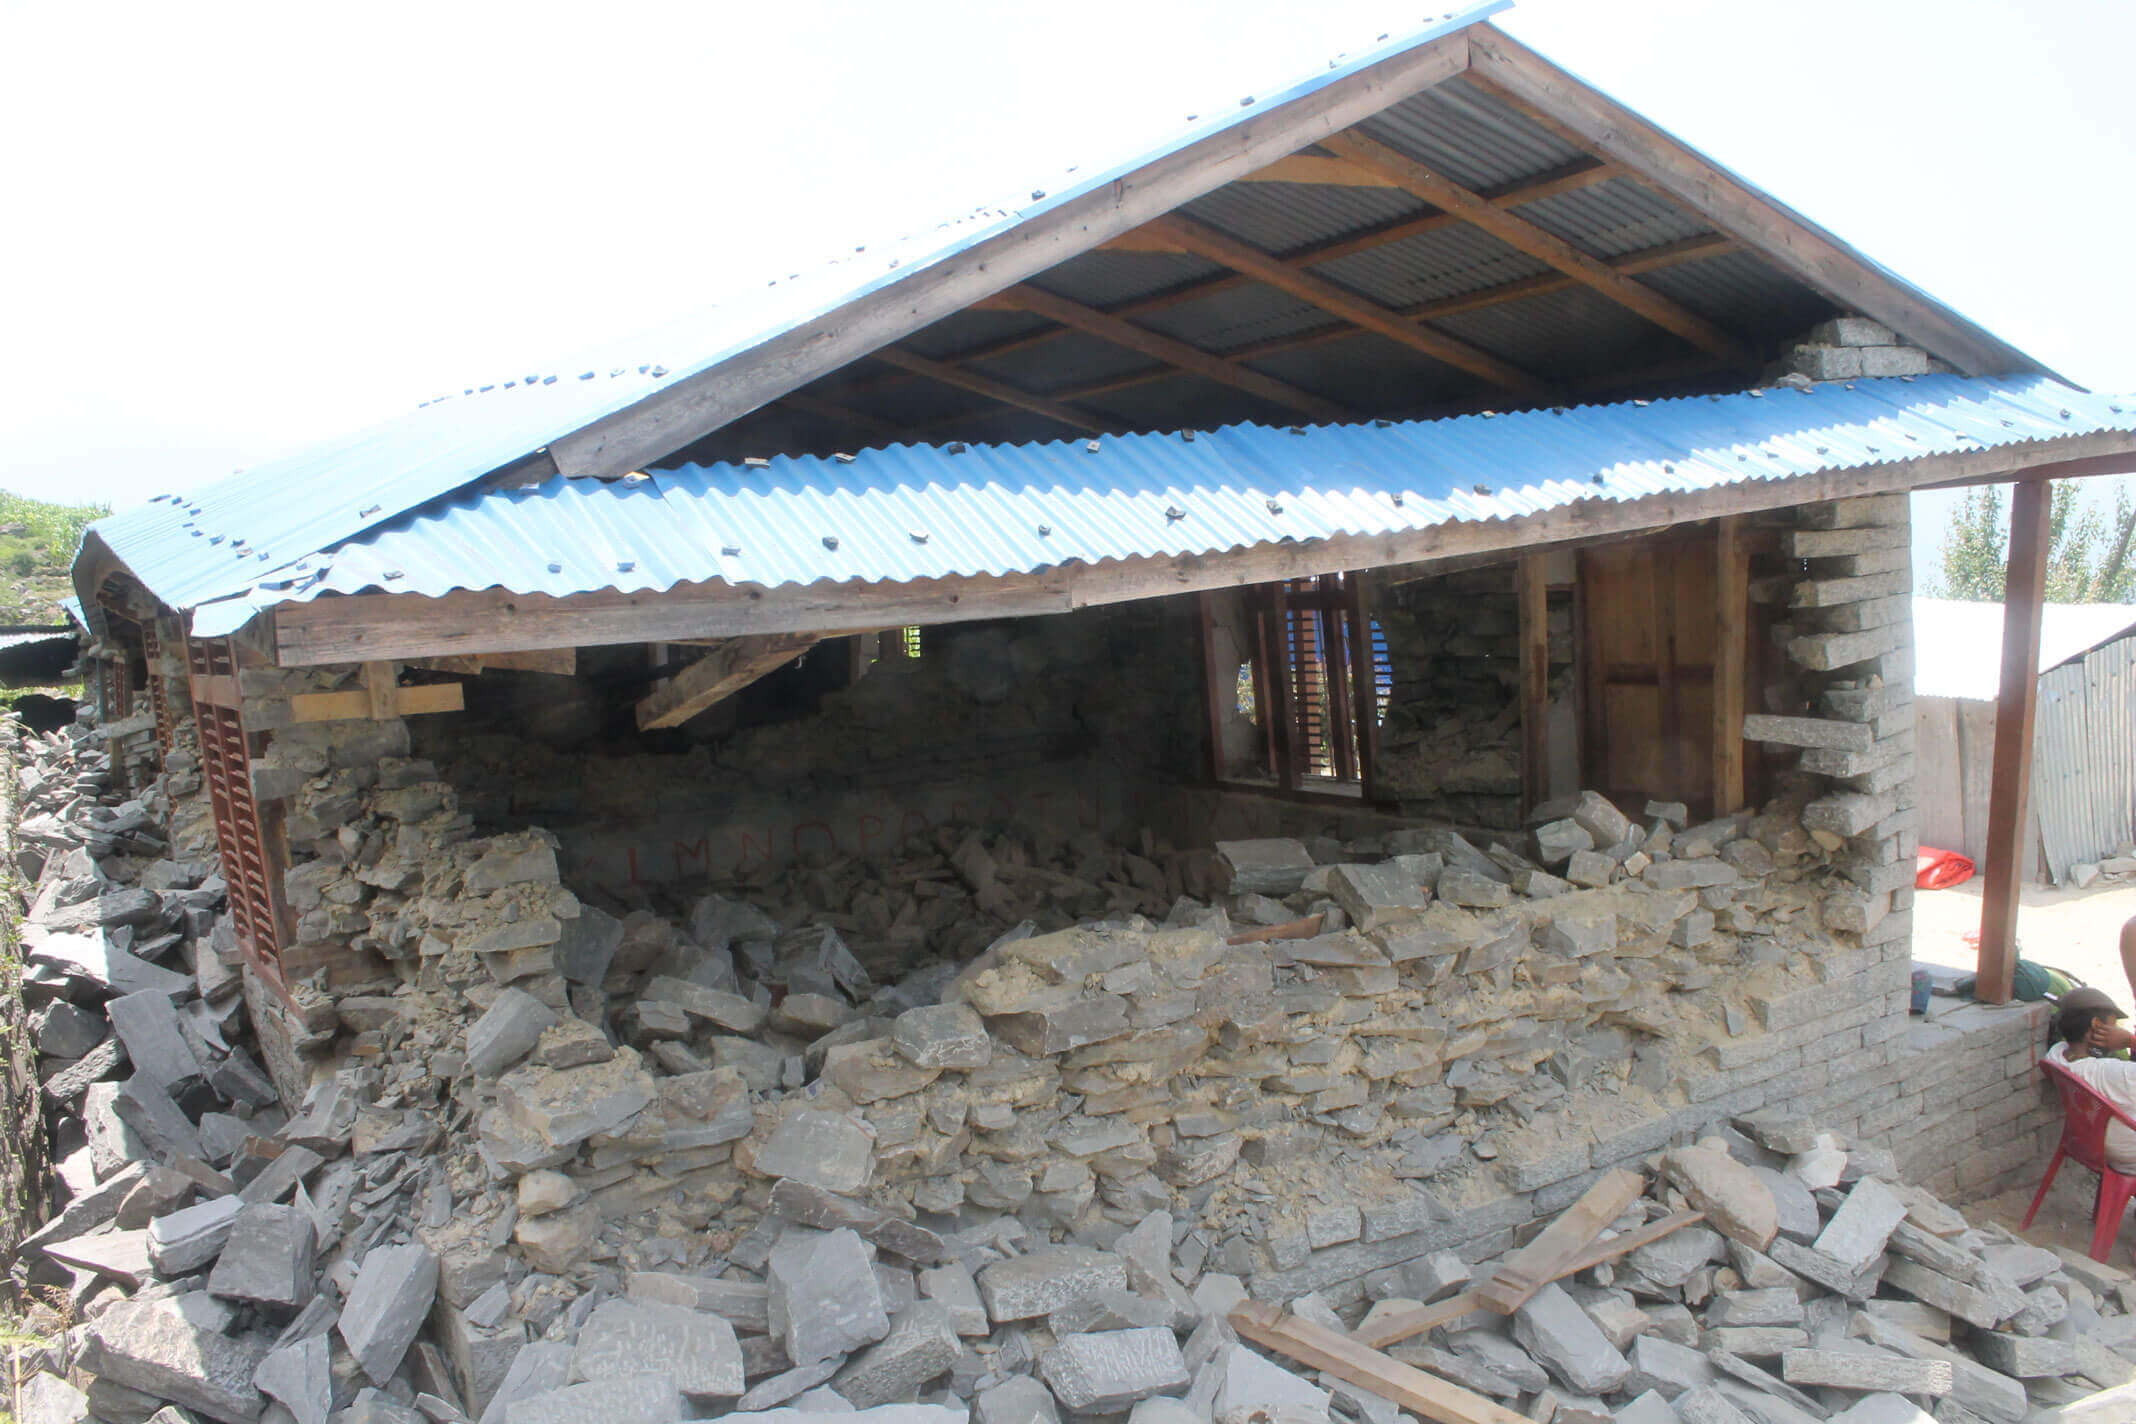 School in Ladap damaged by earthquake in 2015